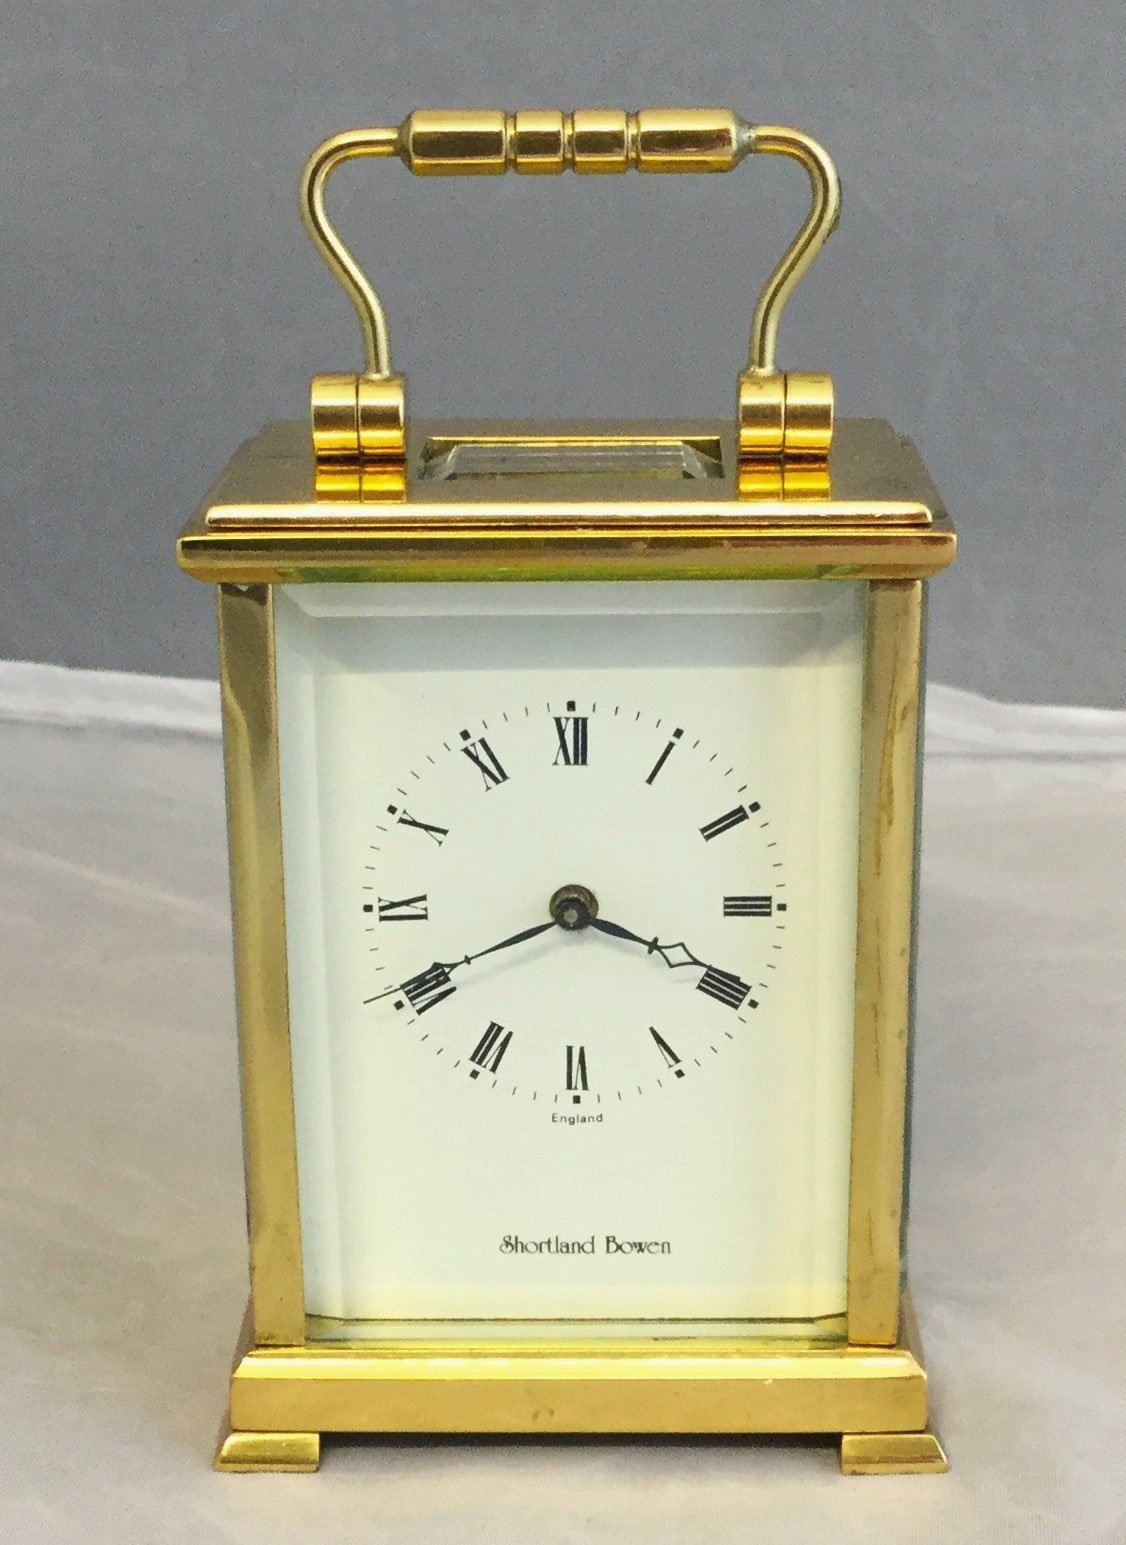 Miniature carriage timepiece